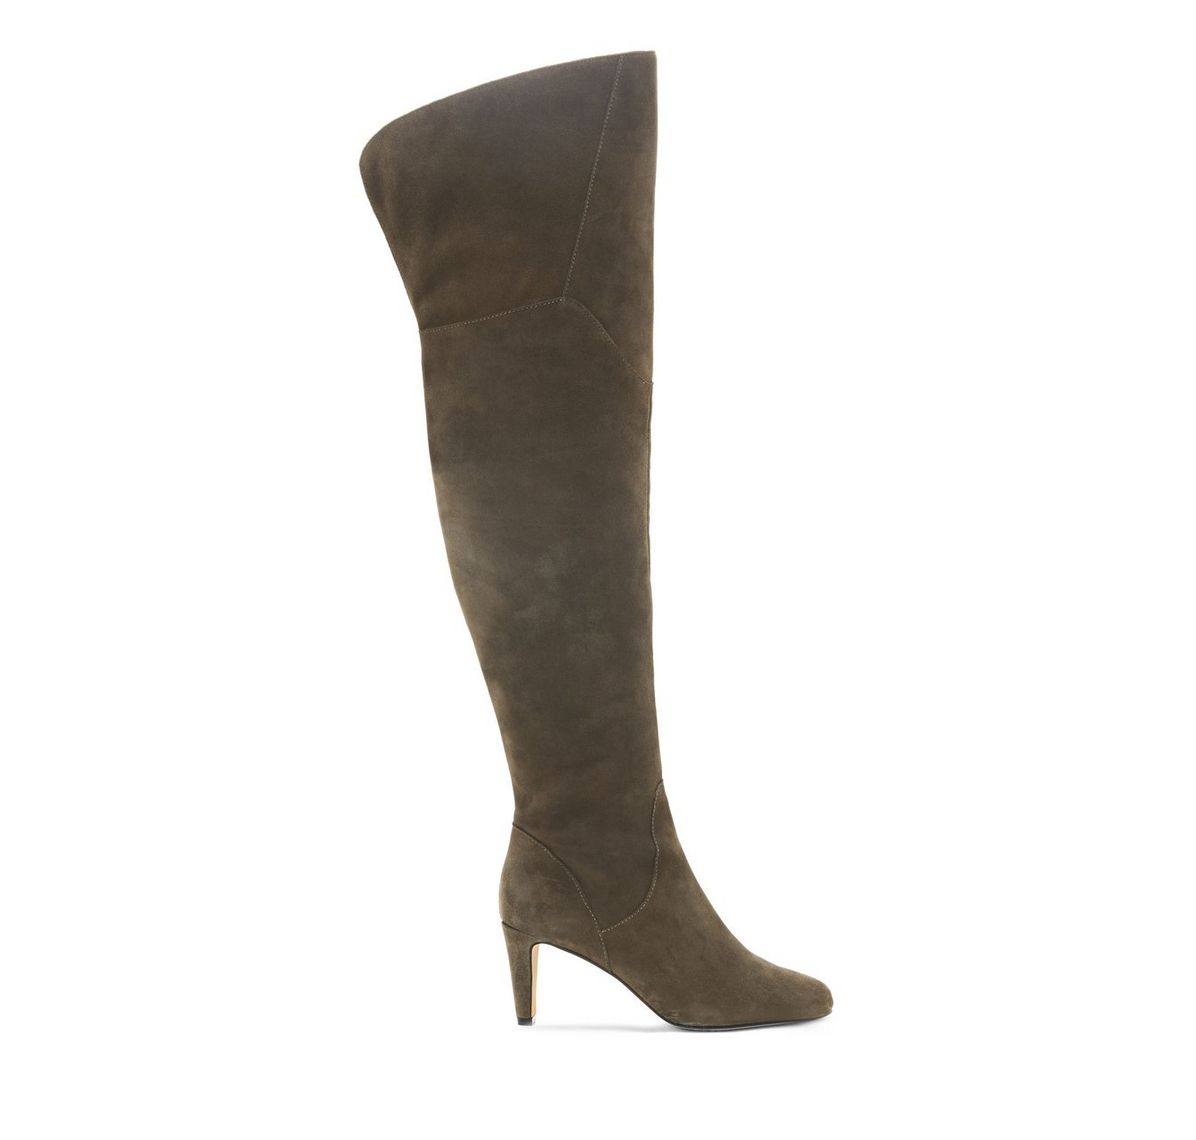 222d57ce754 Vince Camuto Armaceli Over-the-knee Boot - Vince Camuto